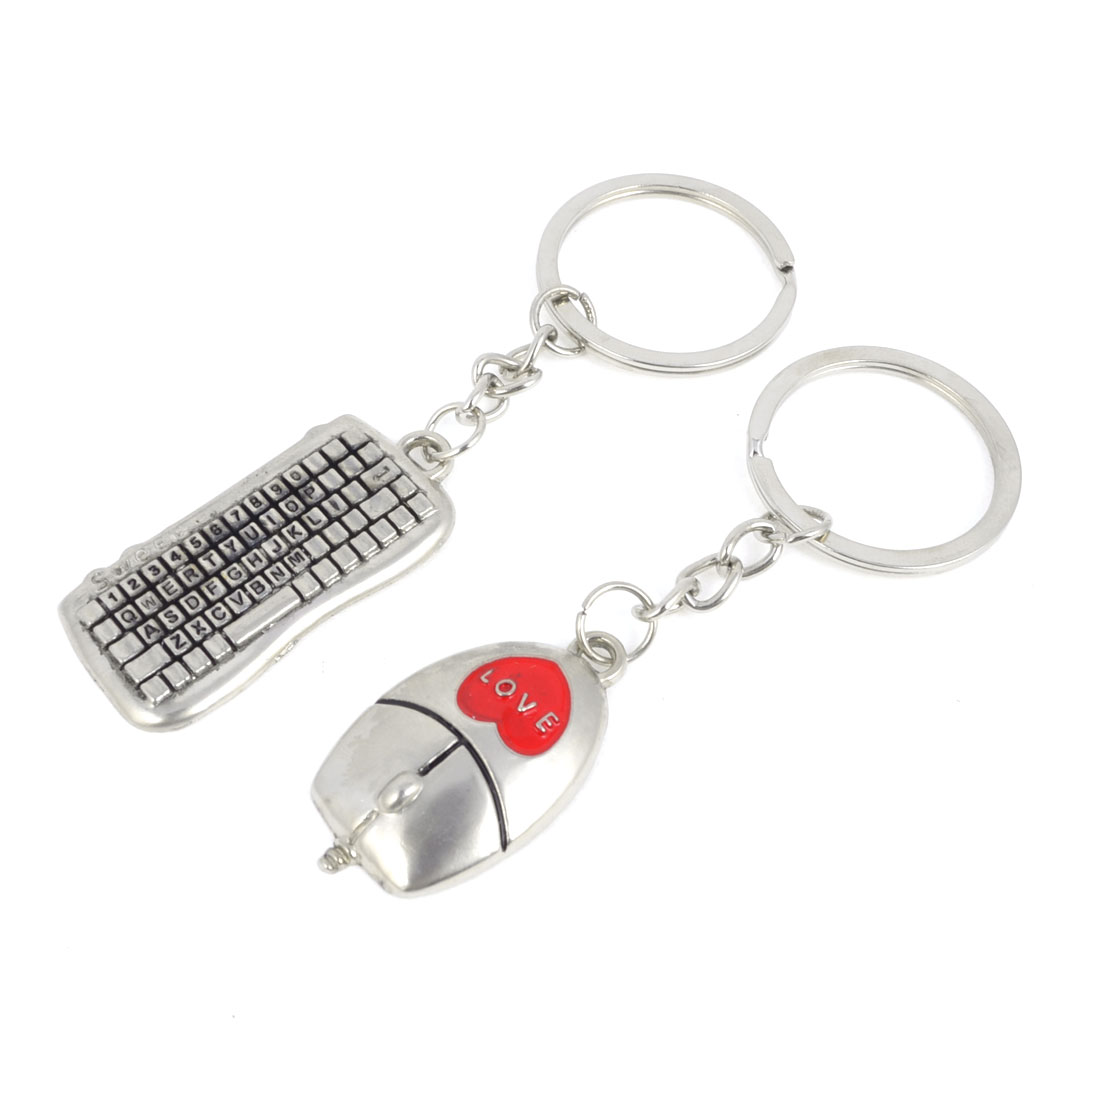 Pair Mouse Keyboard Design Pendant Keychain Key Ring Decoration Silver Tone